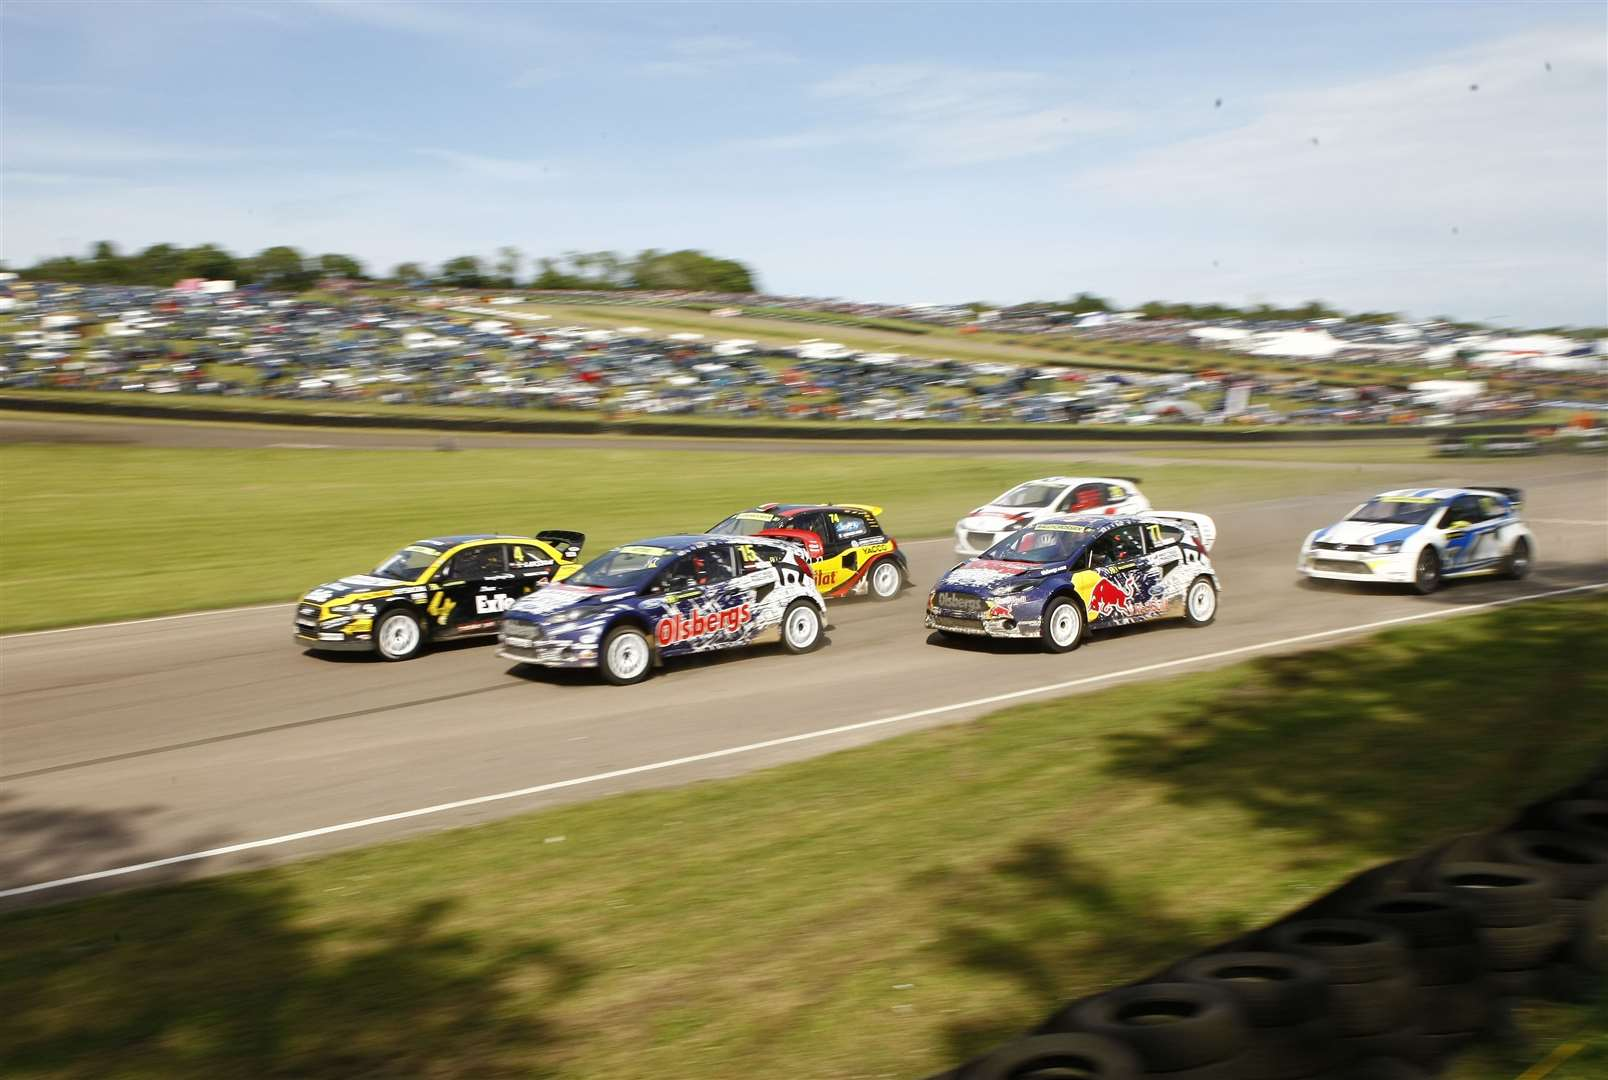 The start of the second semi final at Lydden Hill's FIA World Rallycross Championship round in May 2014, with Audi star Robin Larsson leading the pack. Picture: Matt Bristow